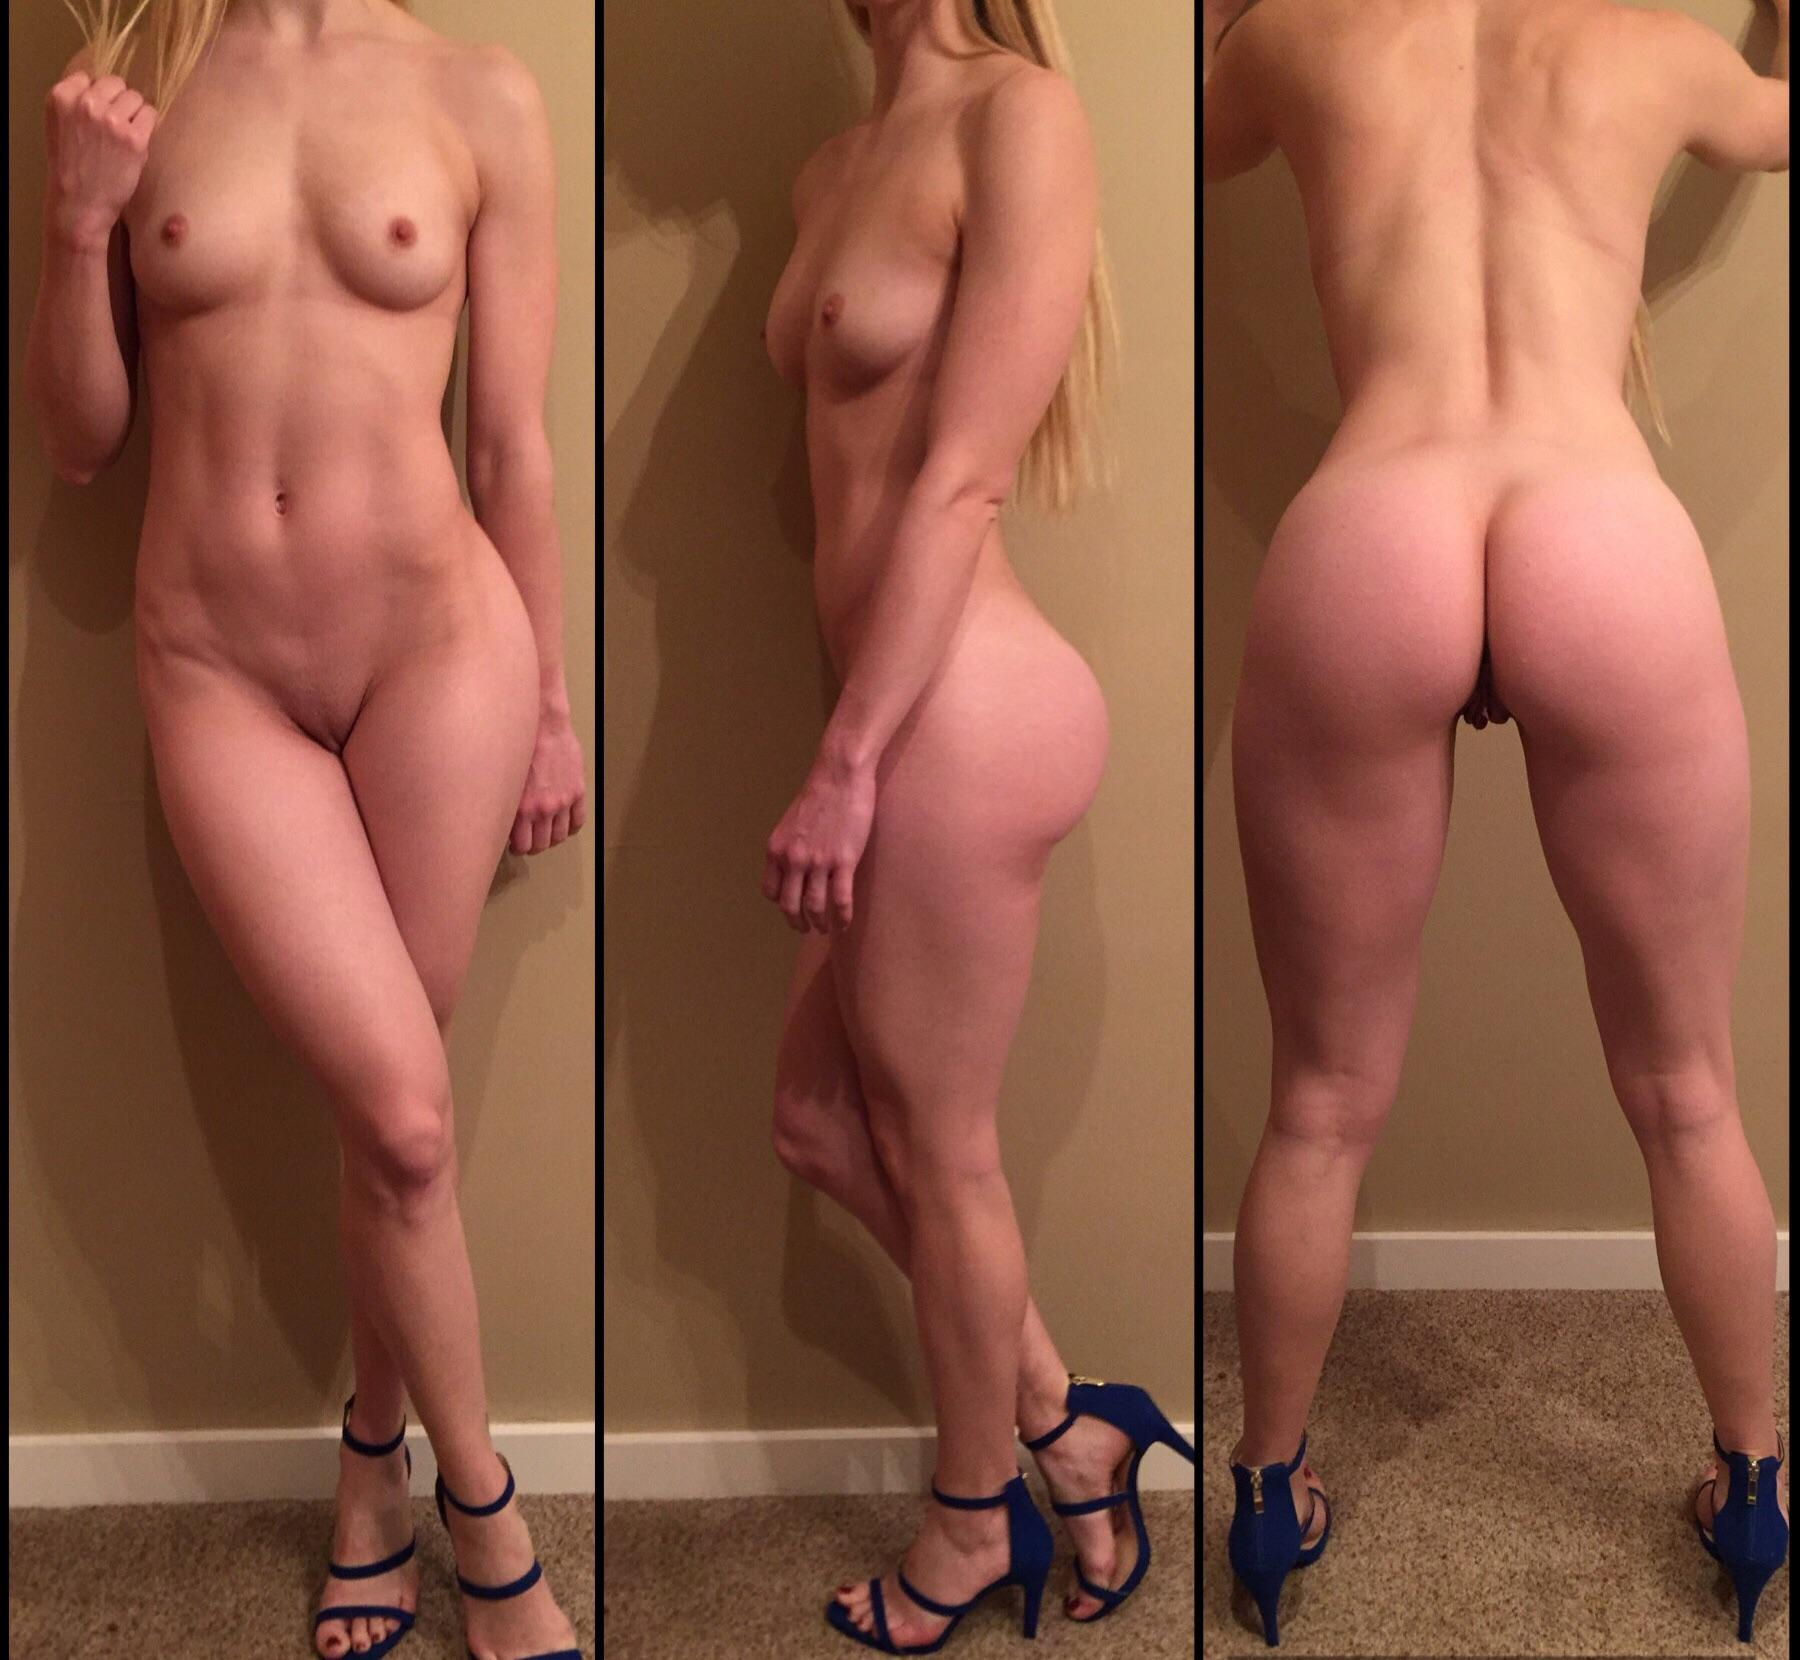 First Post On Here! I'll Wait For You At Home In Nothing But My Heels😜